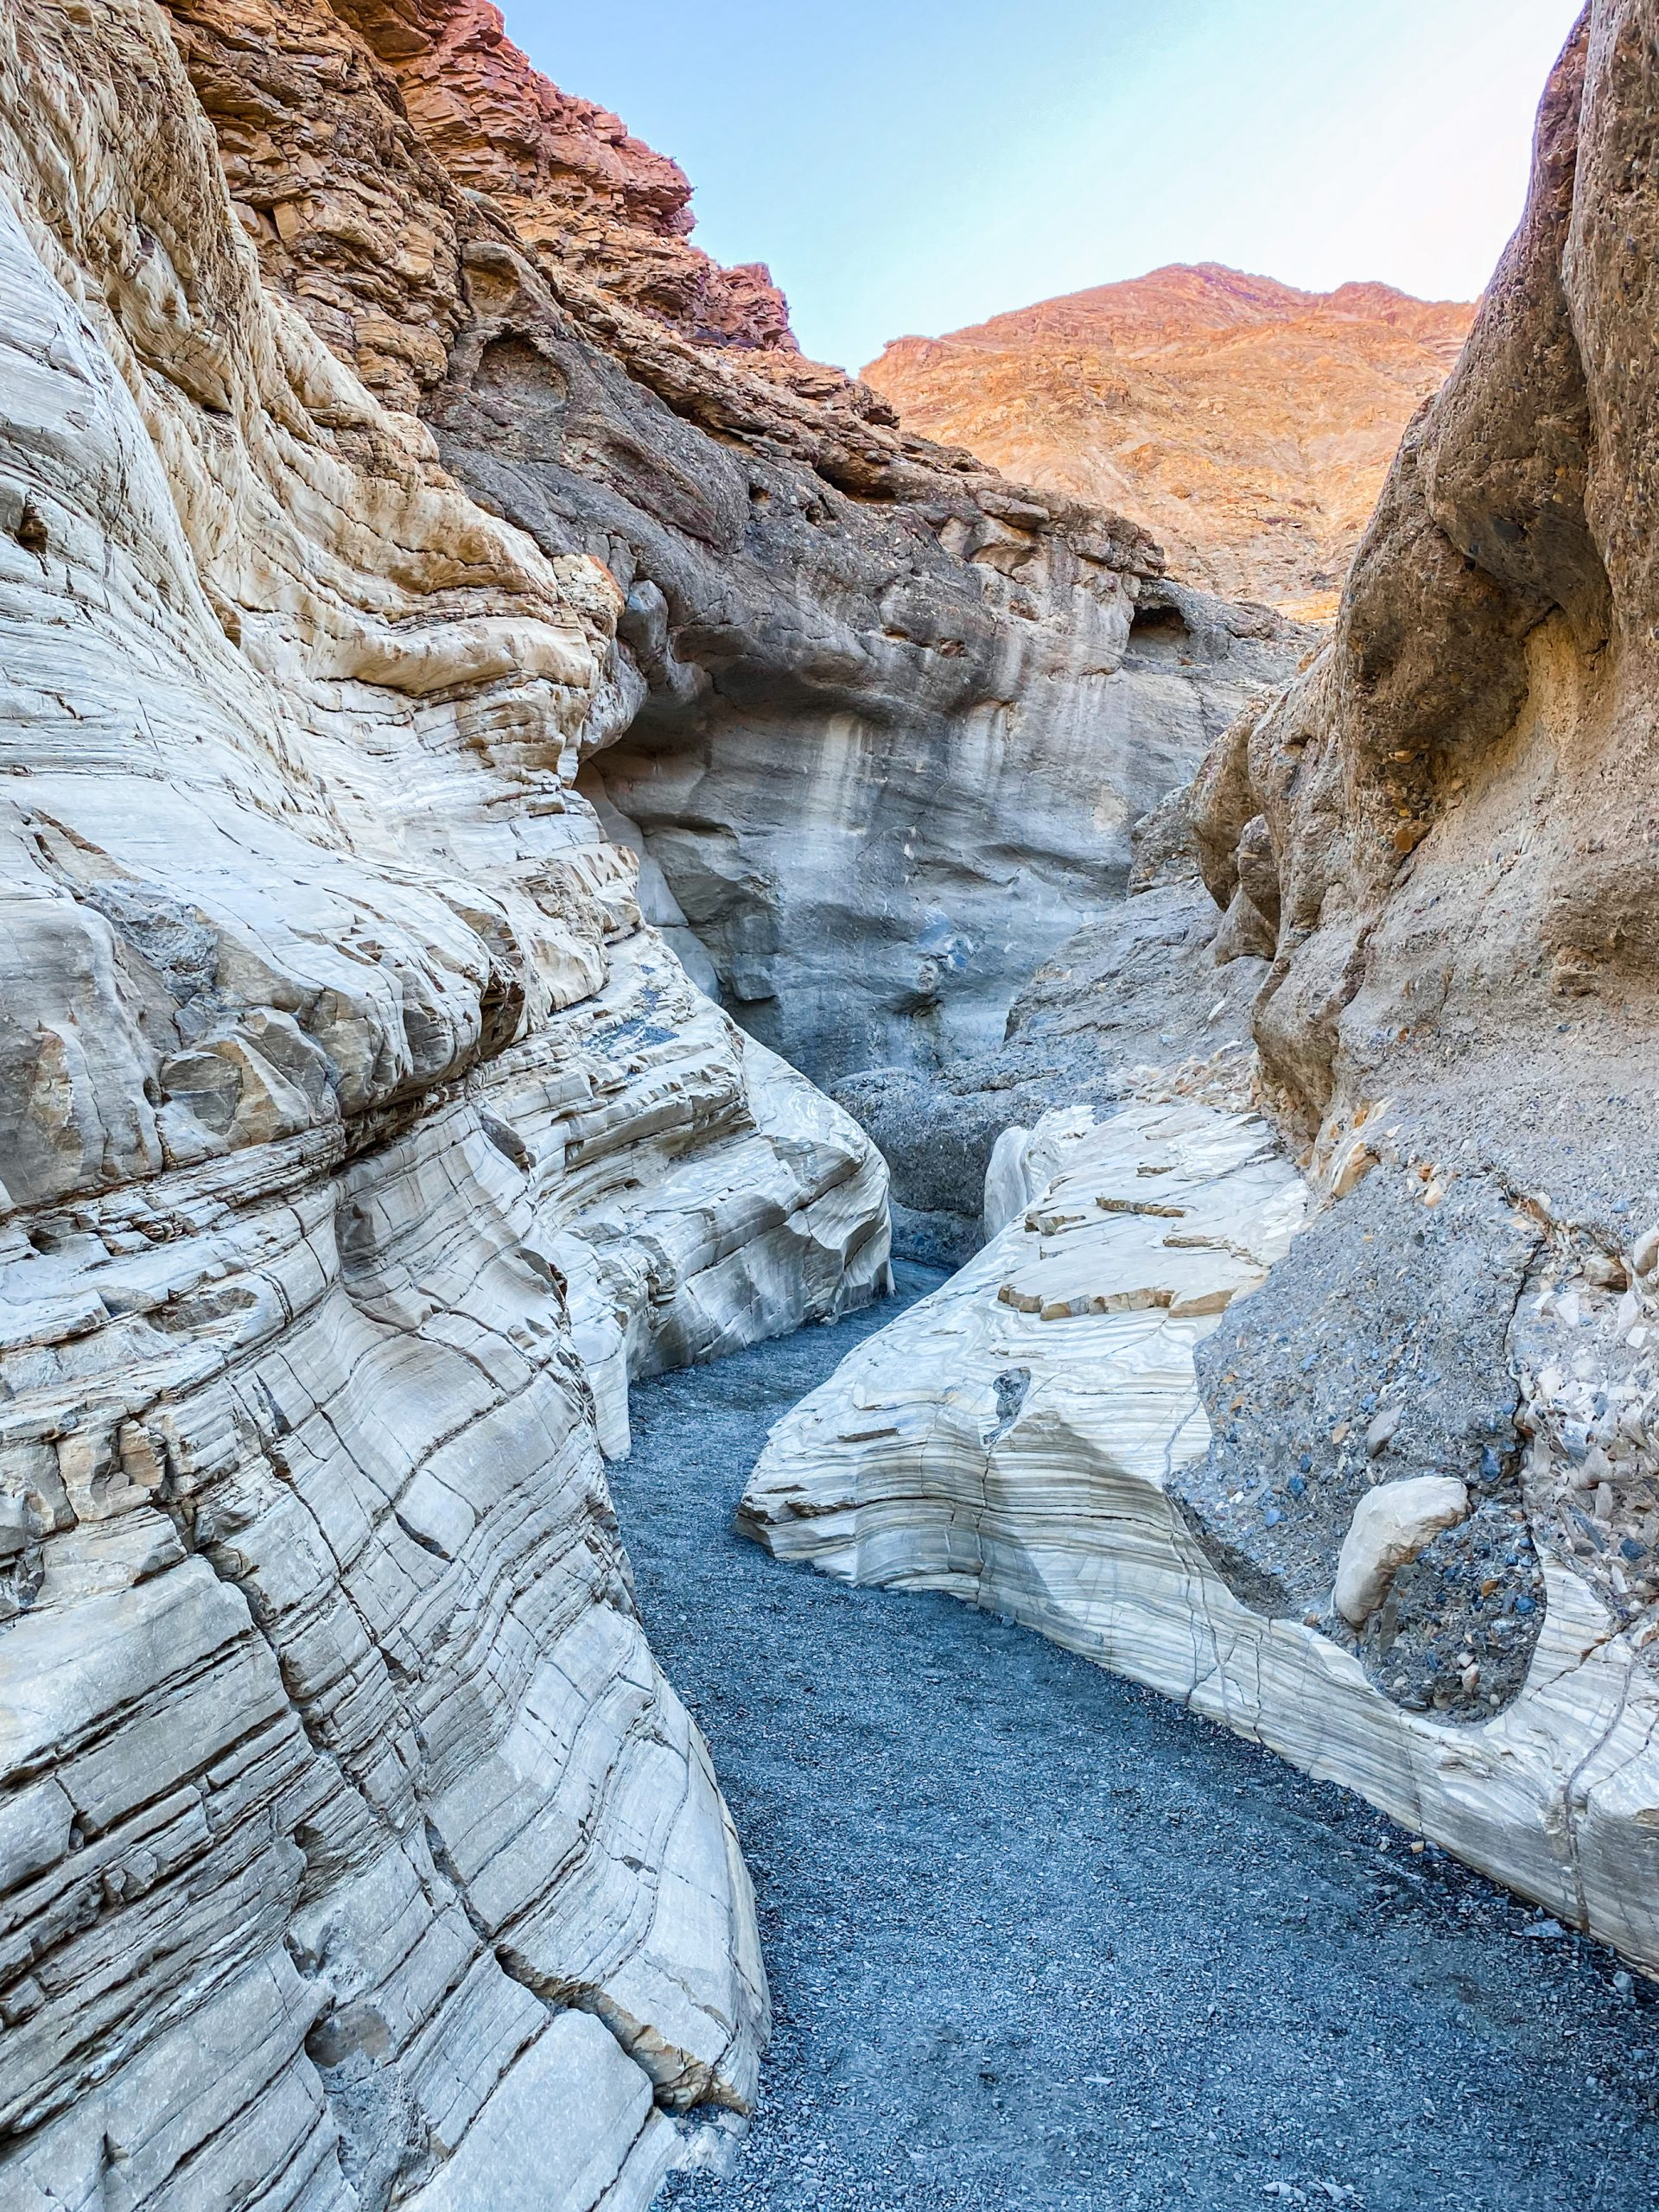 Mosaic Canyon slot canyons - Death Valley National Park